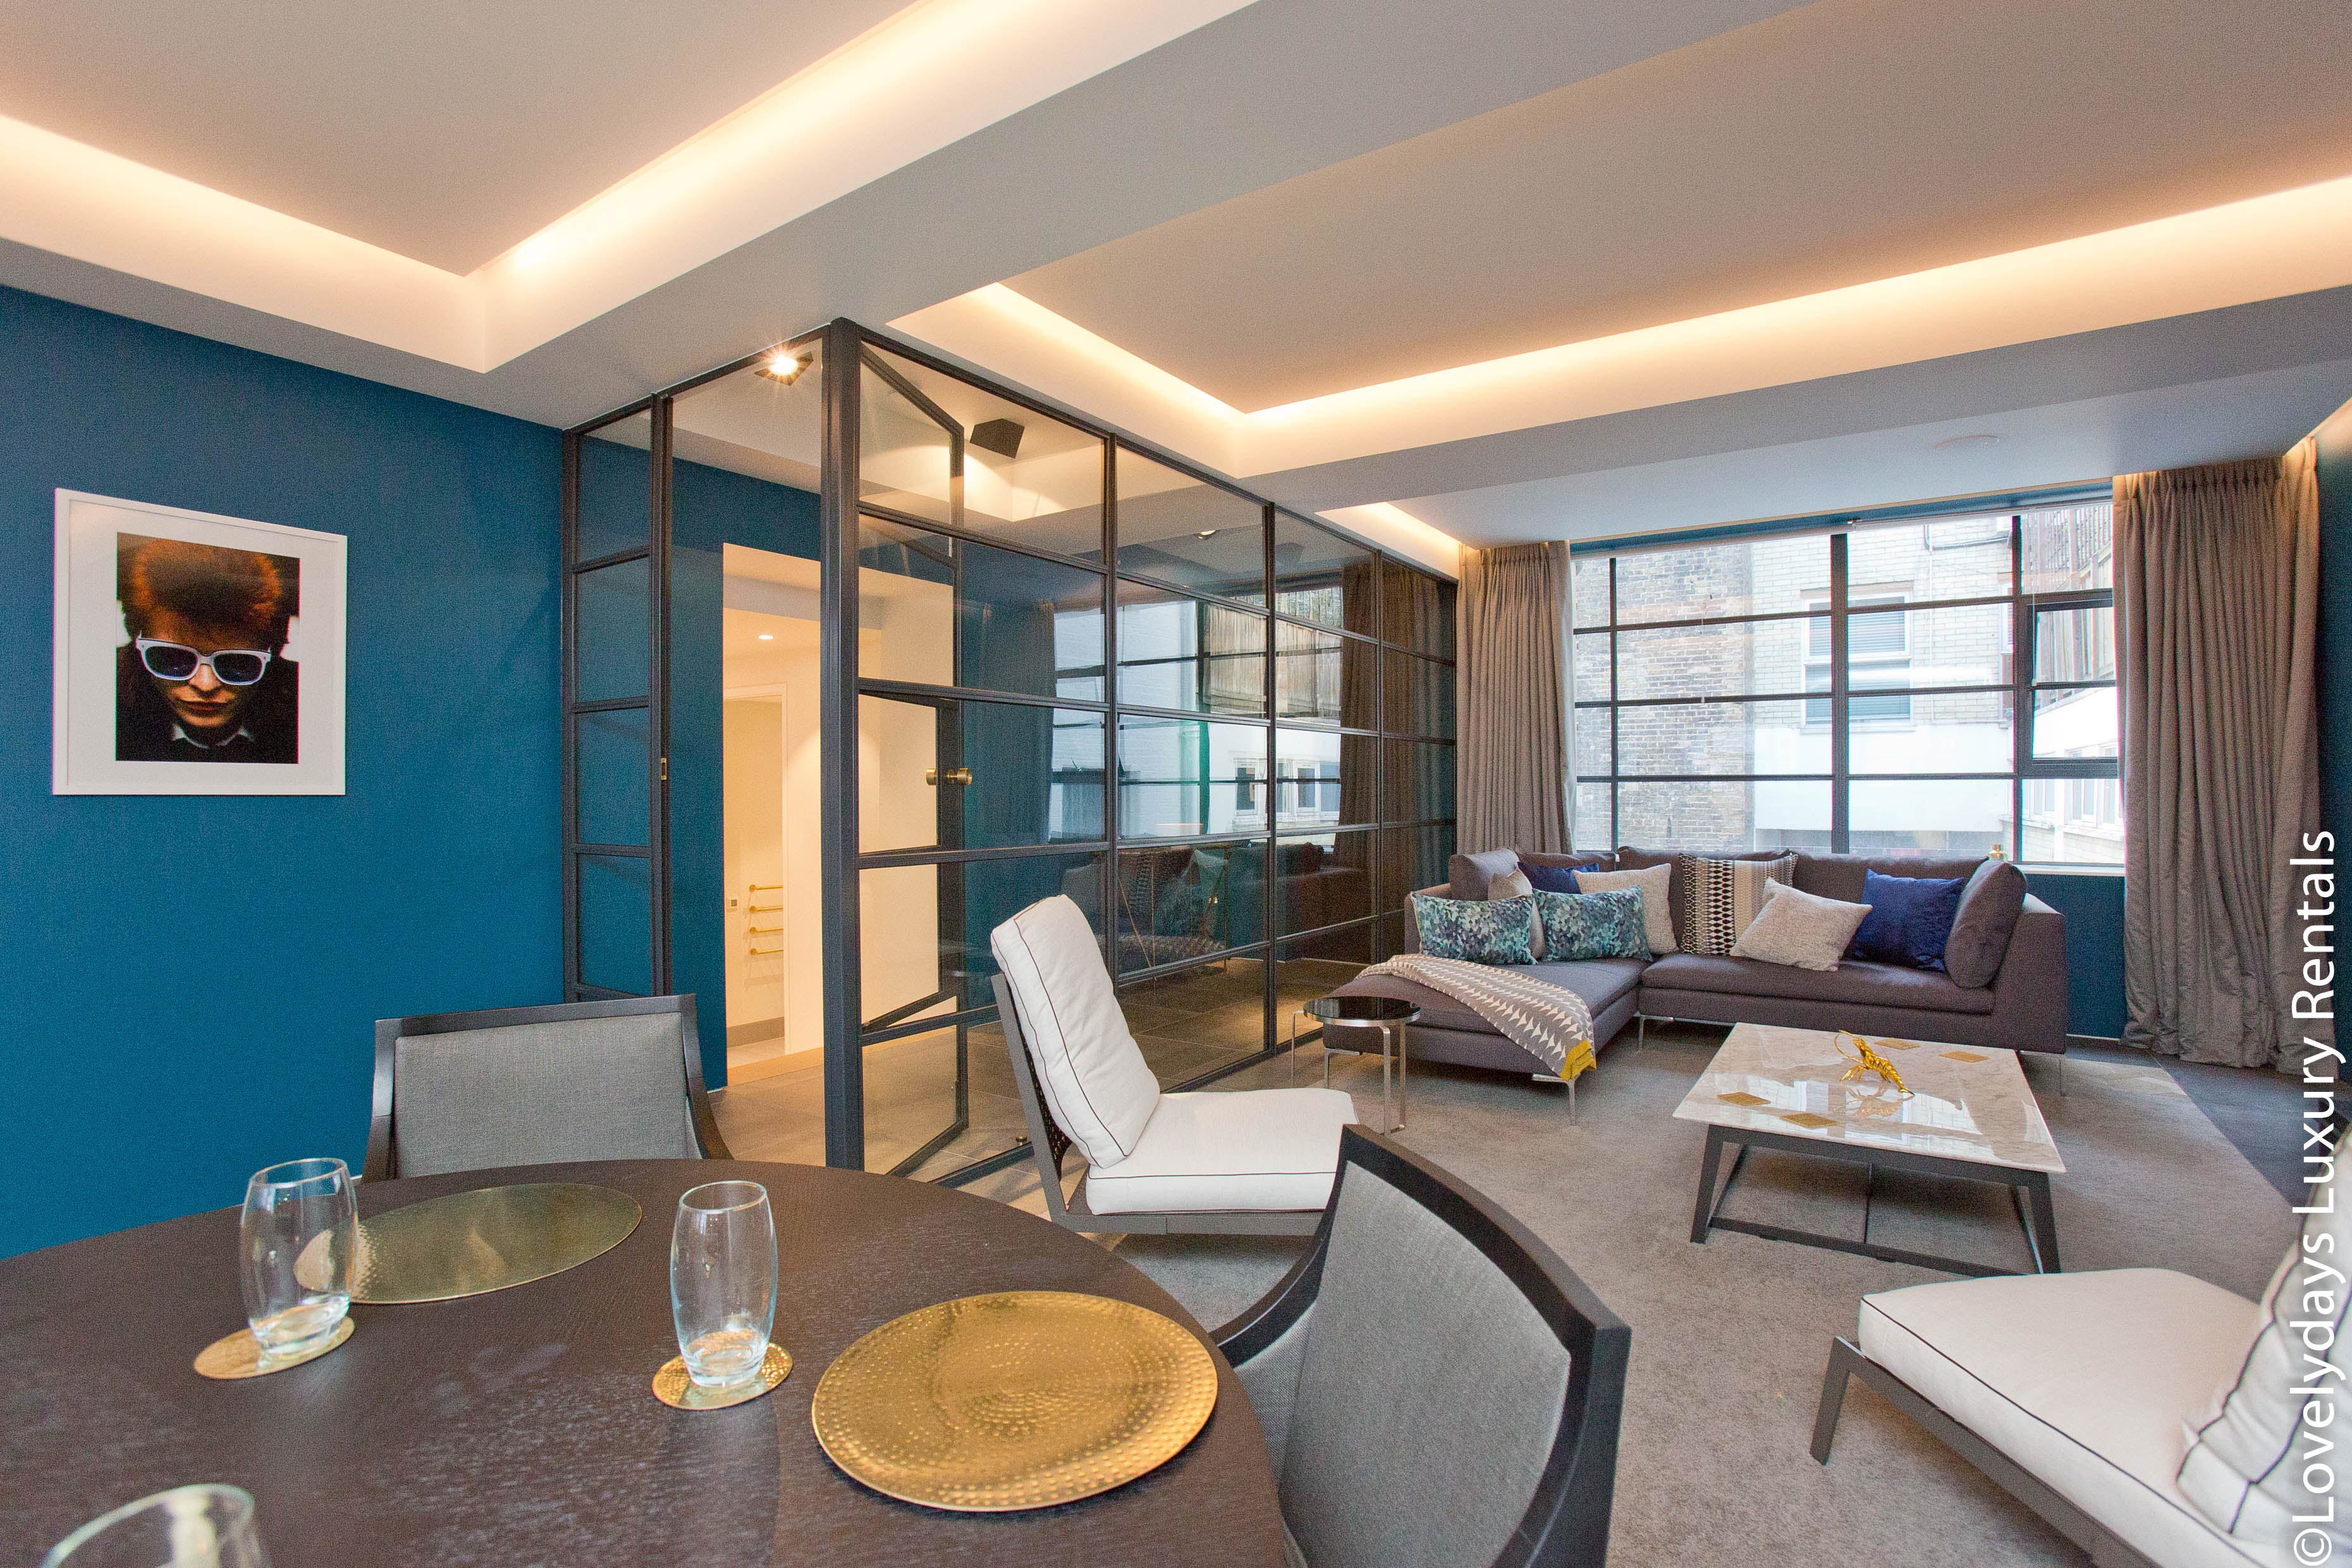 Lovelydays luxury service apartment rental - London - Soho - Royalty Mews III - Partner - 2 bedrooms - 2 bathrooms - Luxury living room - 737d1a8f158d - Lovelydays